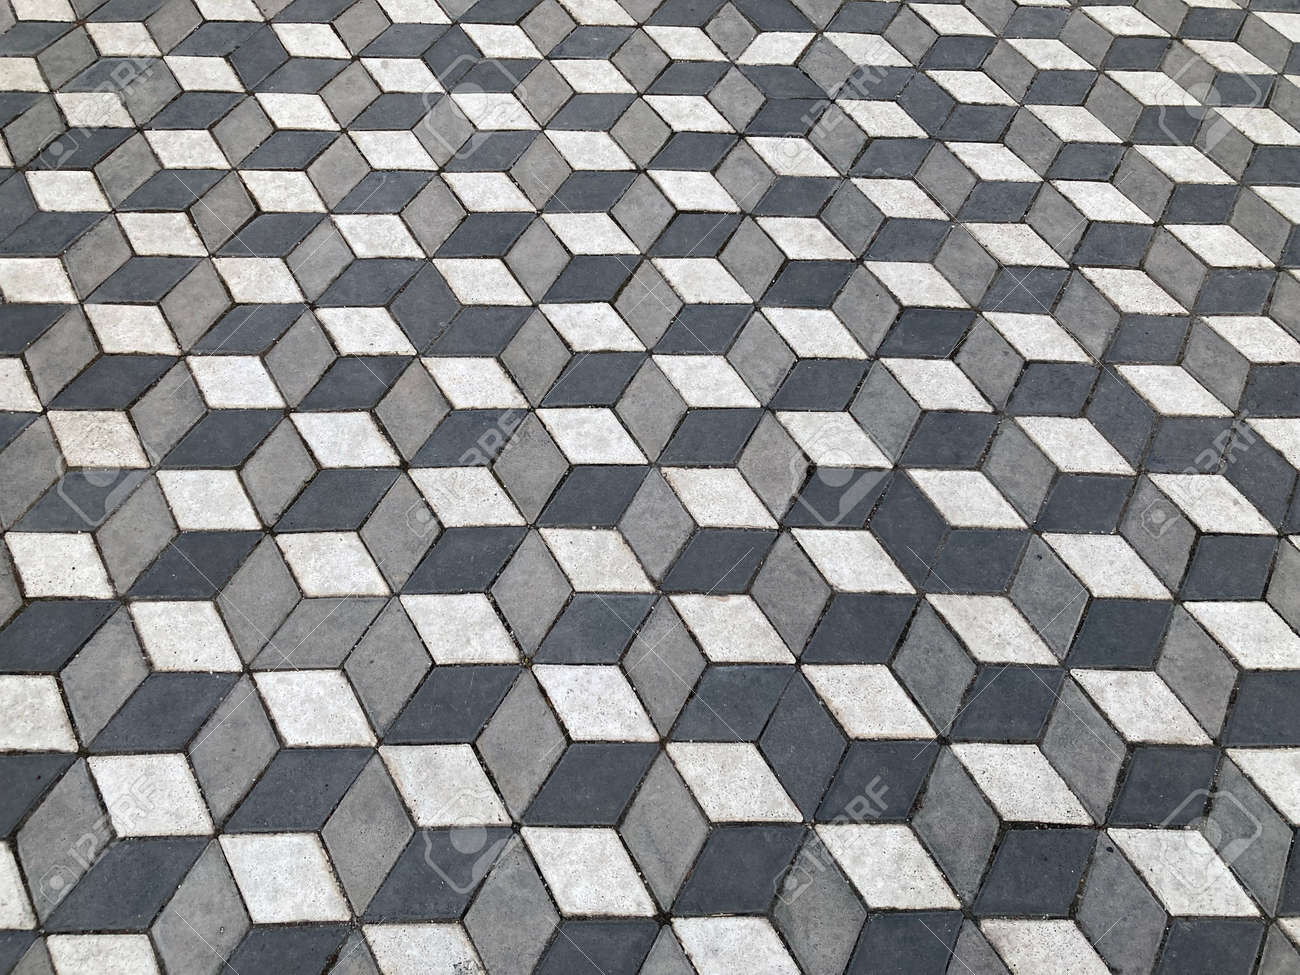 background 3d paving slabs of gray color - 173399314